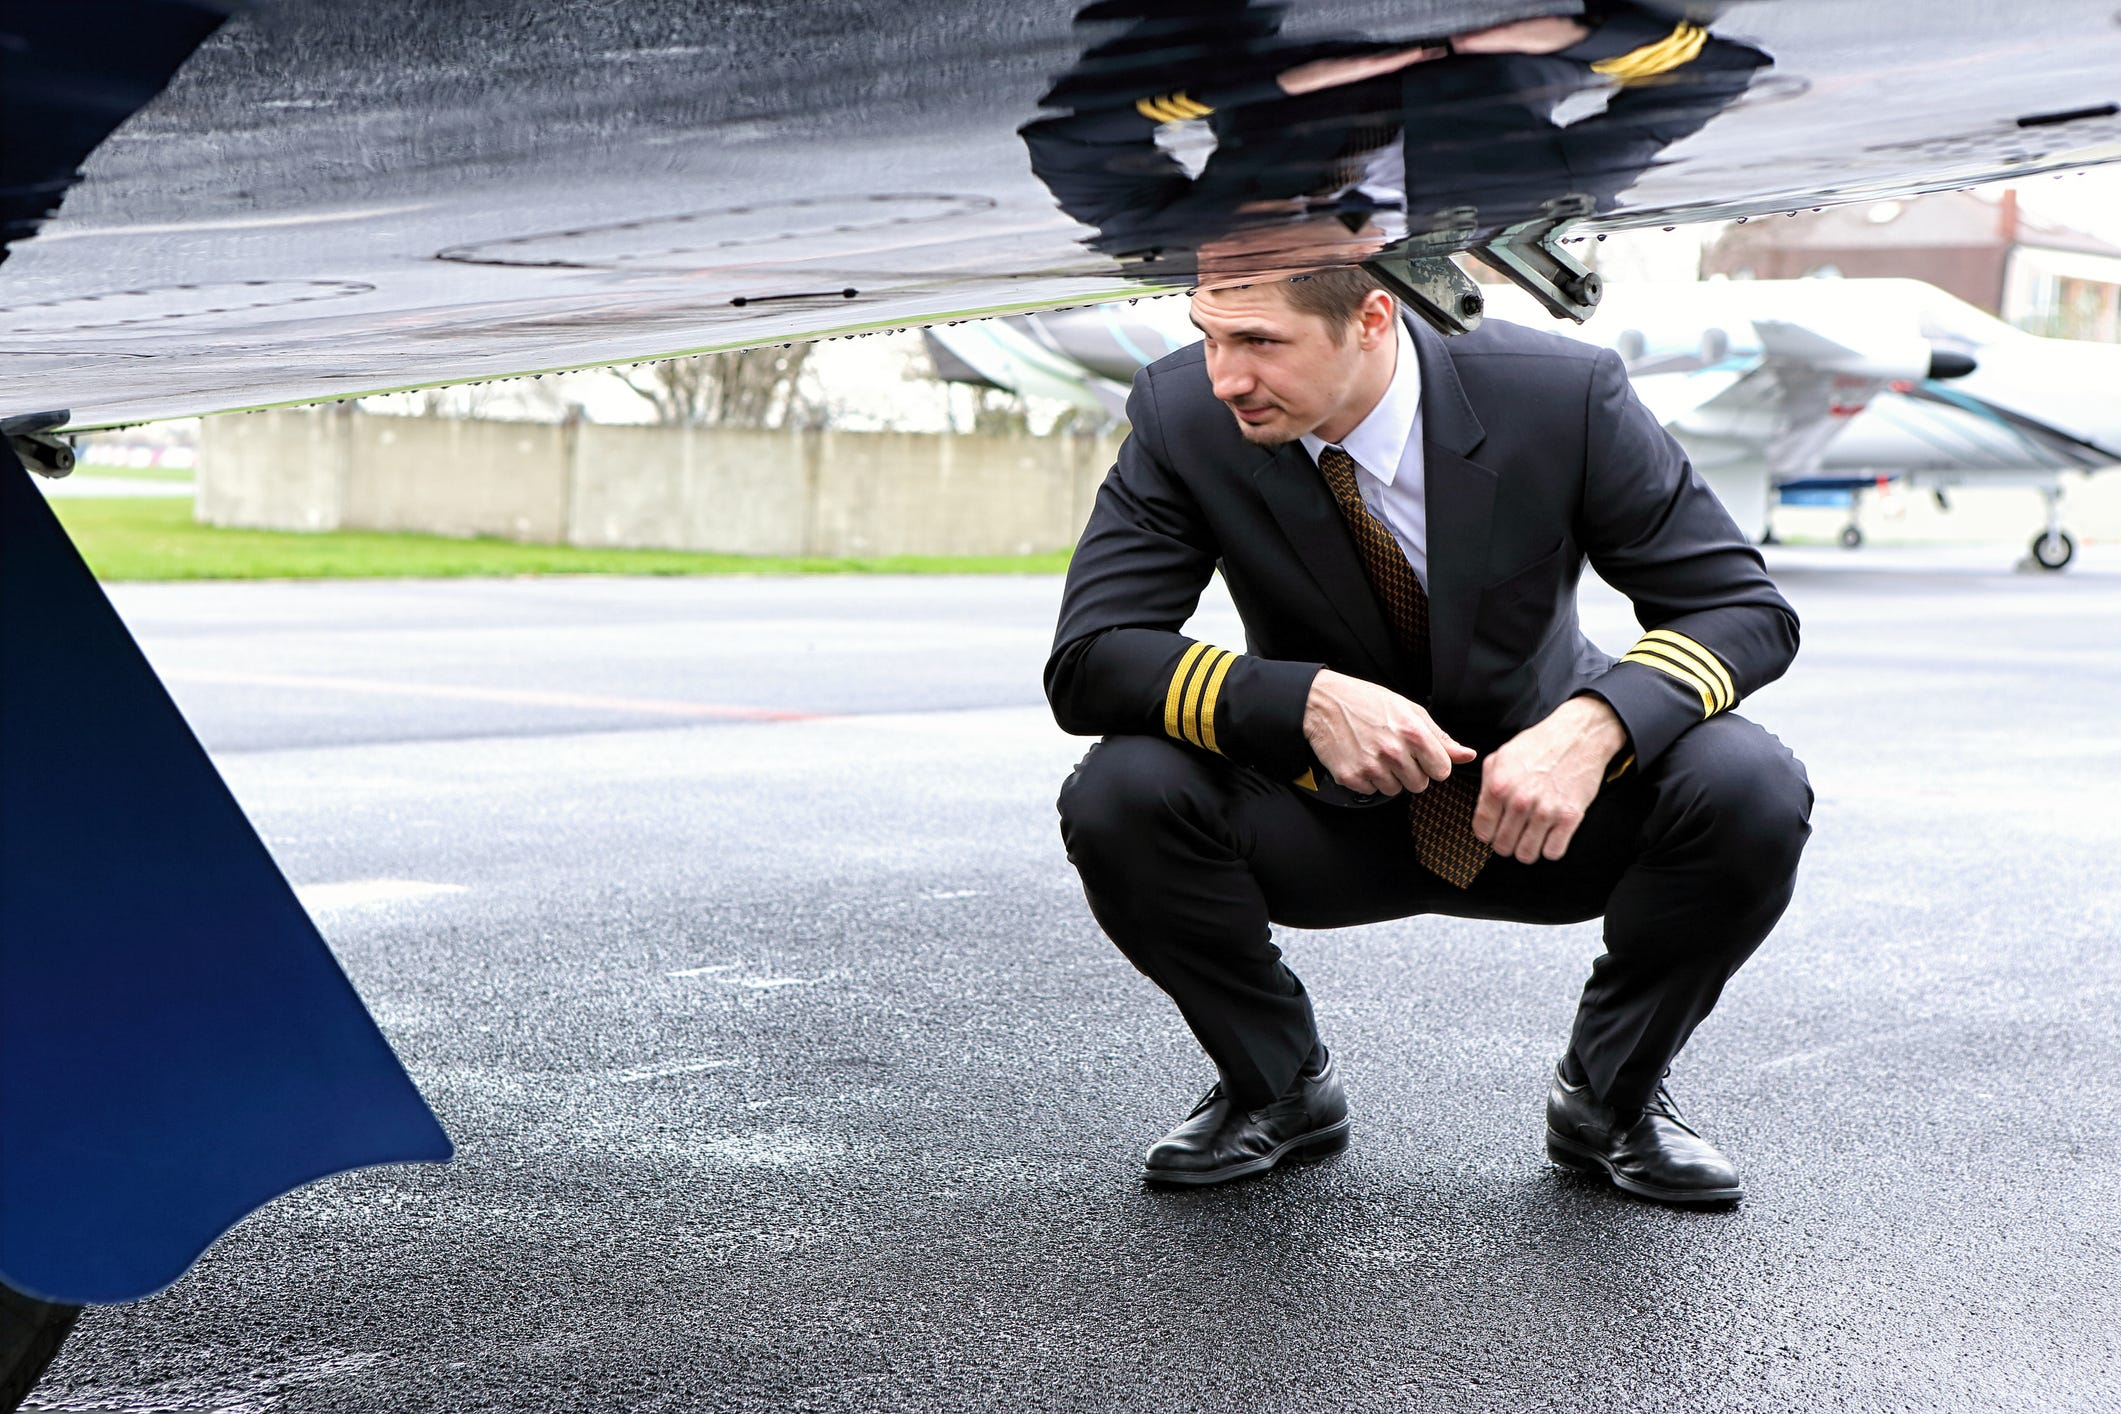 How often do airline pilots find problems during preflight walk-arounds?